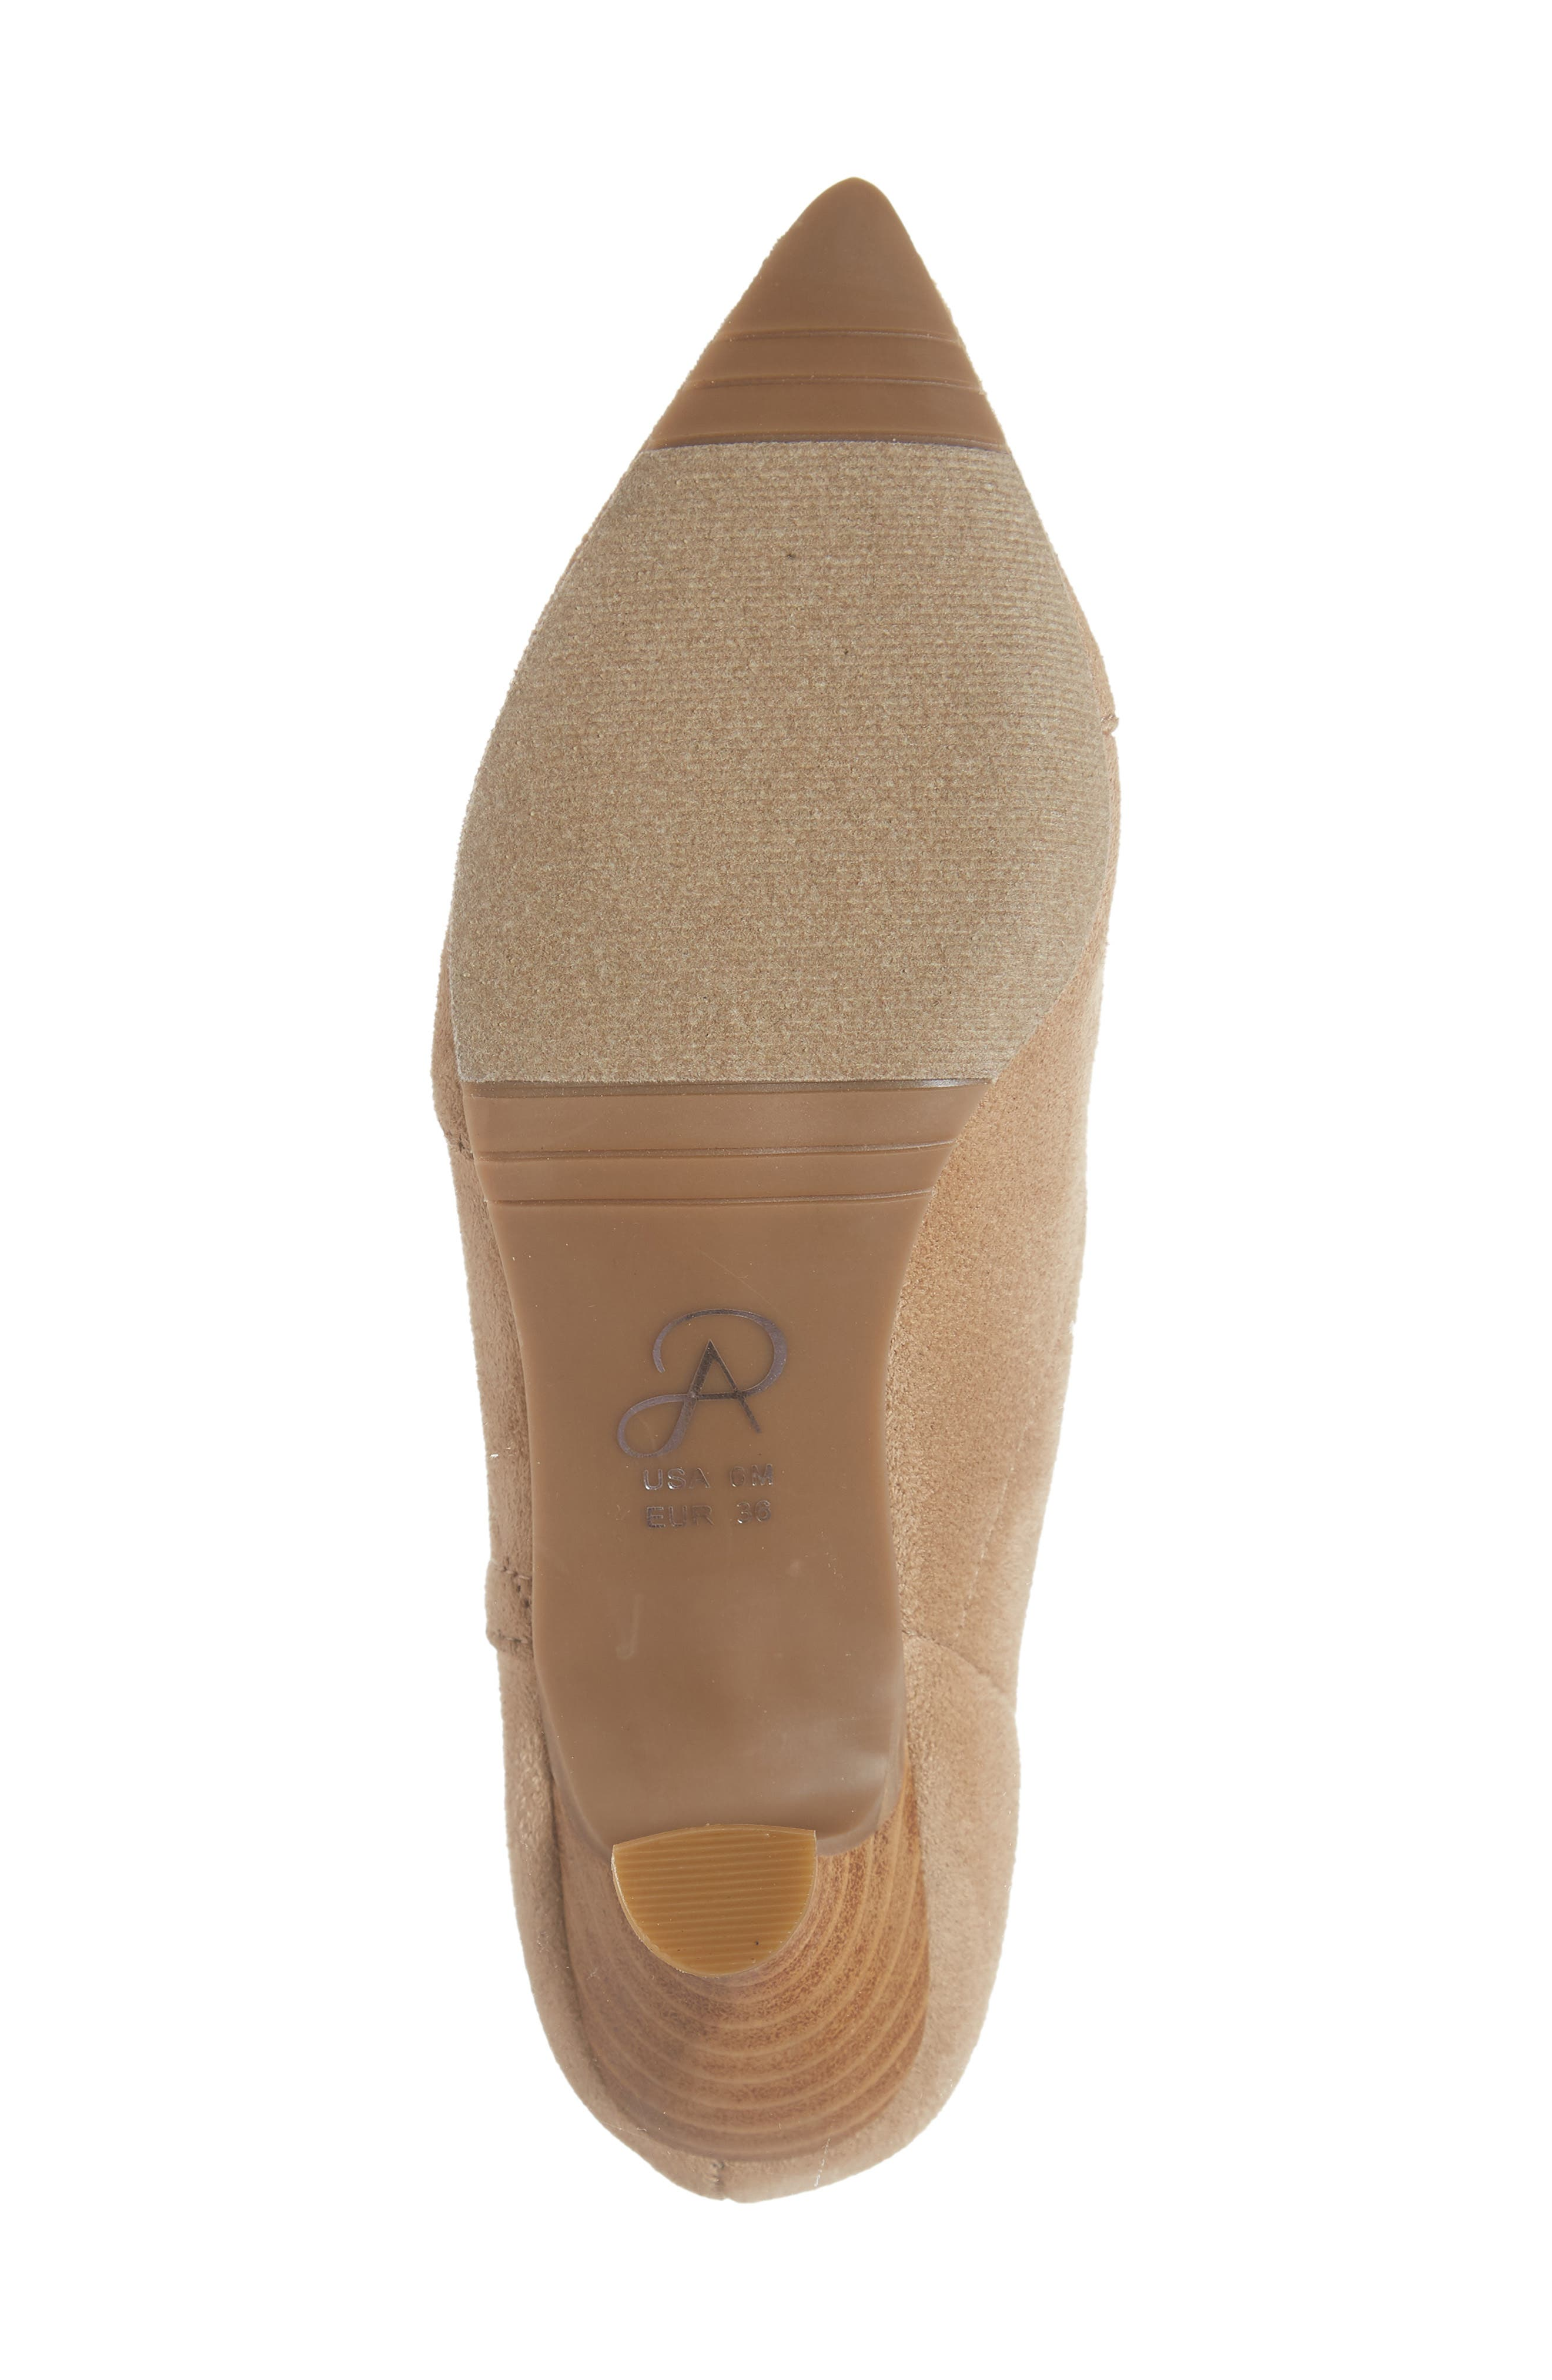 Hayes Pointy Toe Bootie,                             Alternate thumbnail 6, color,                             OAT SUEDE